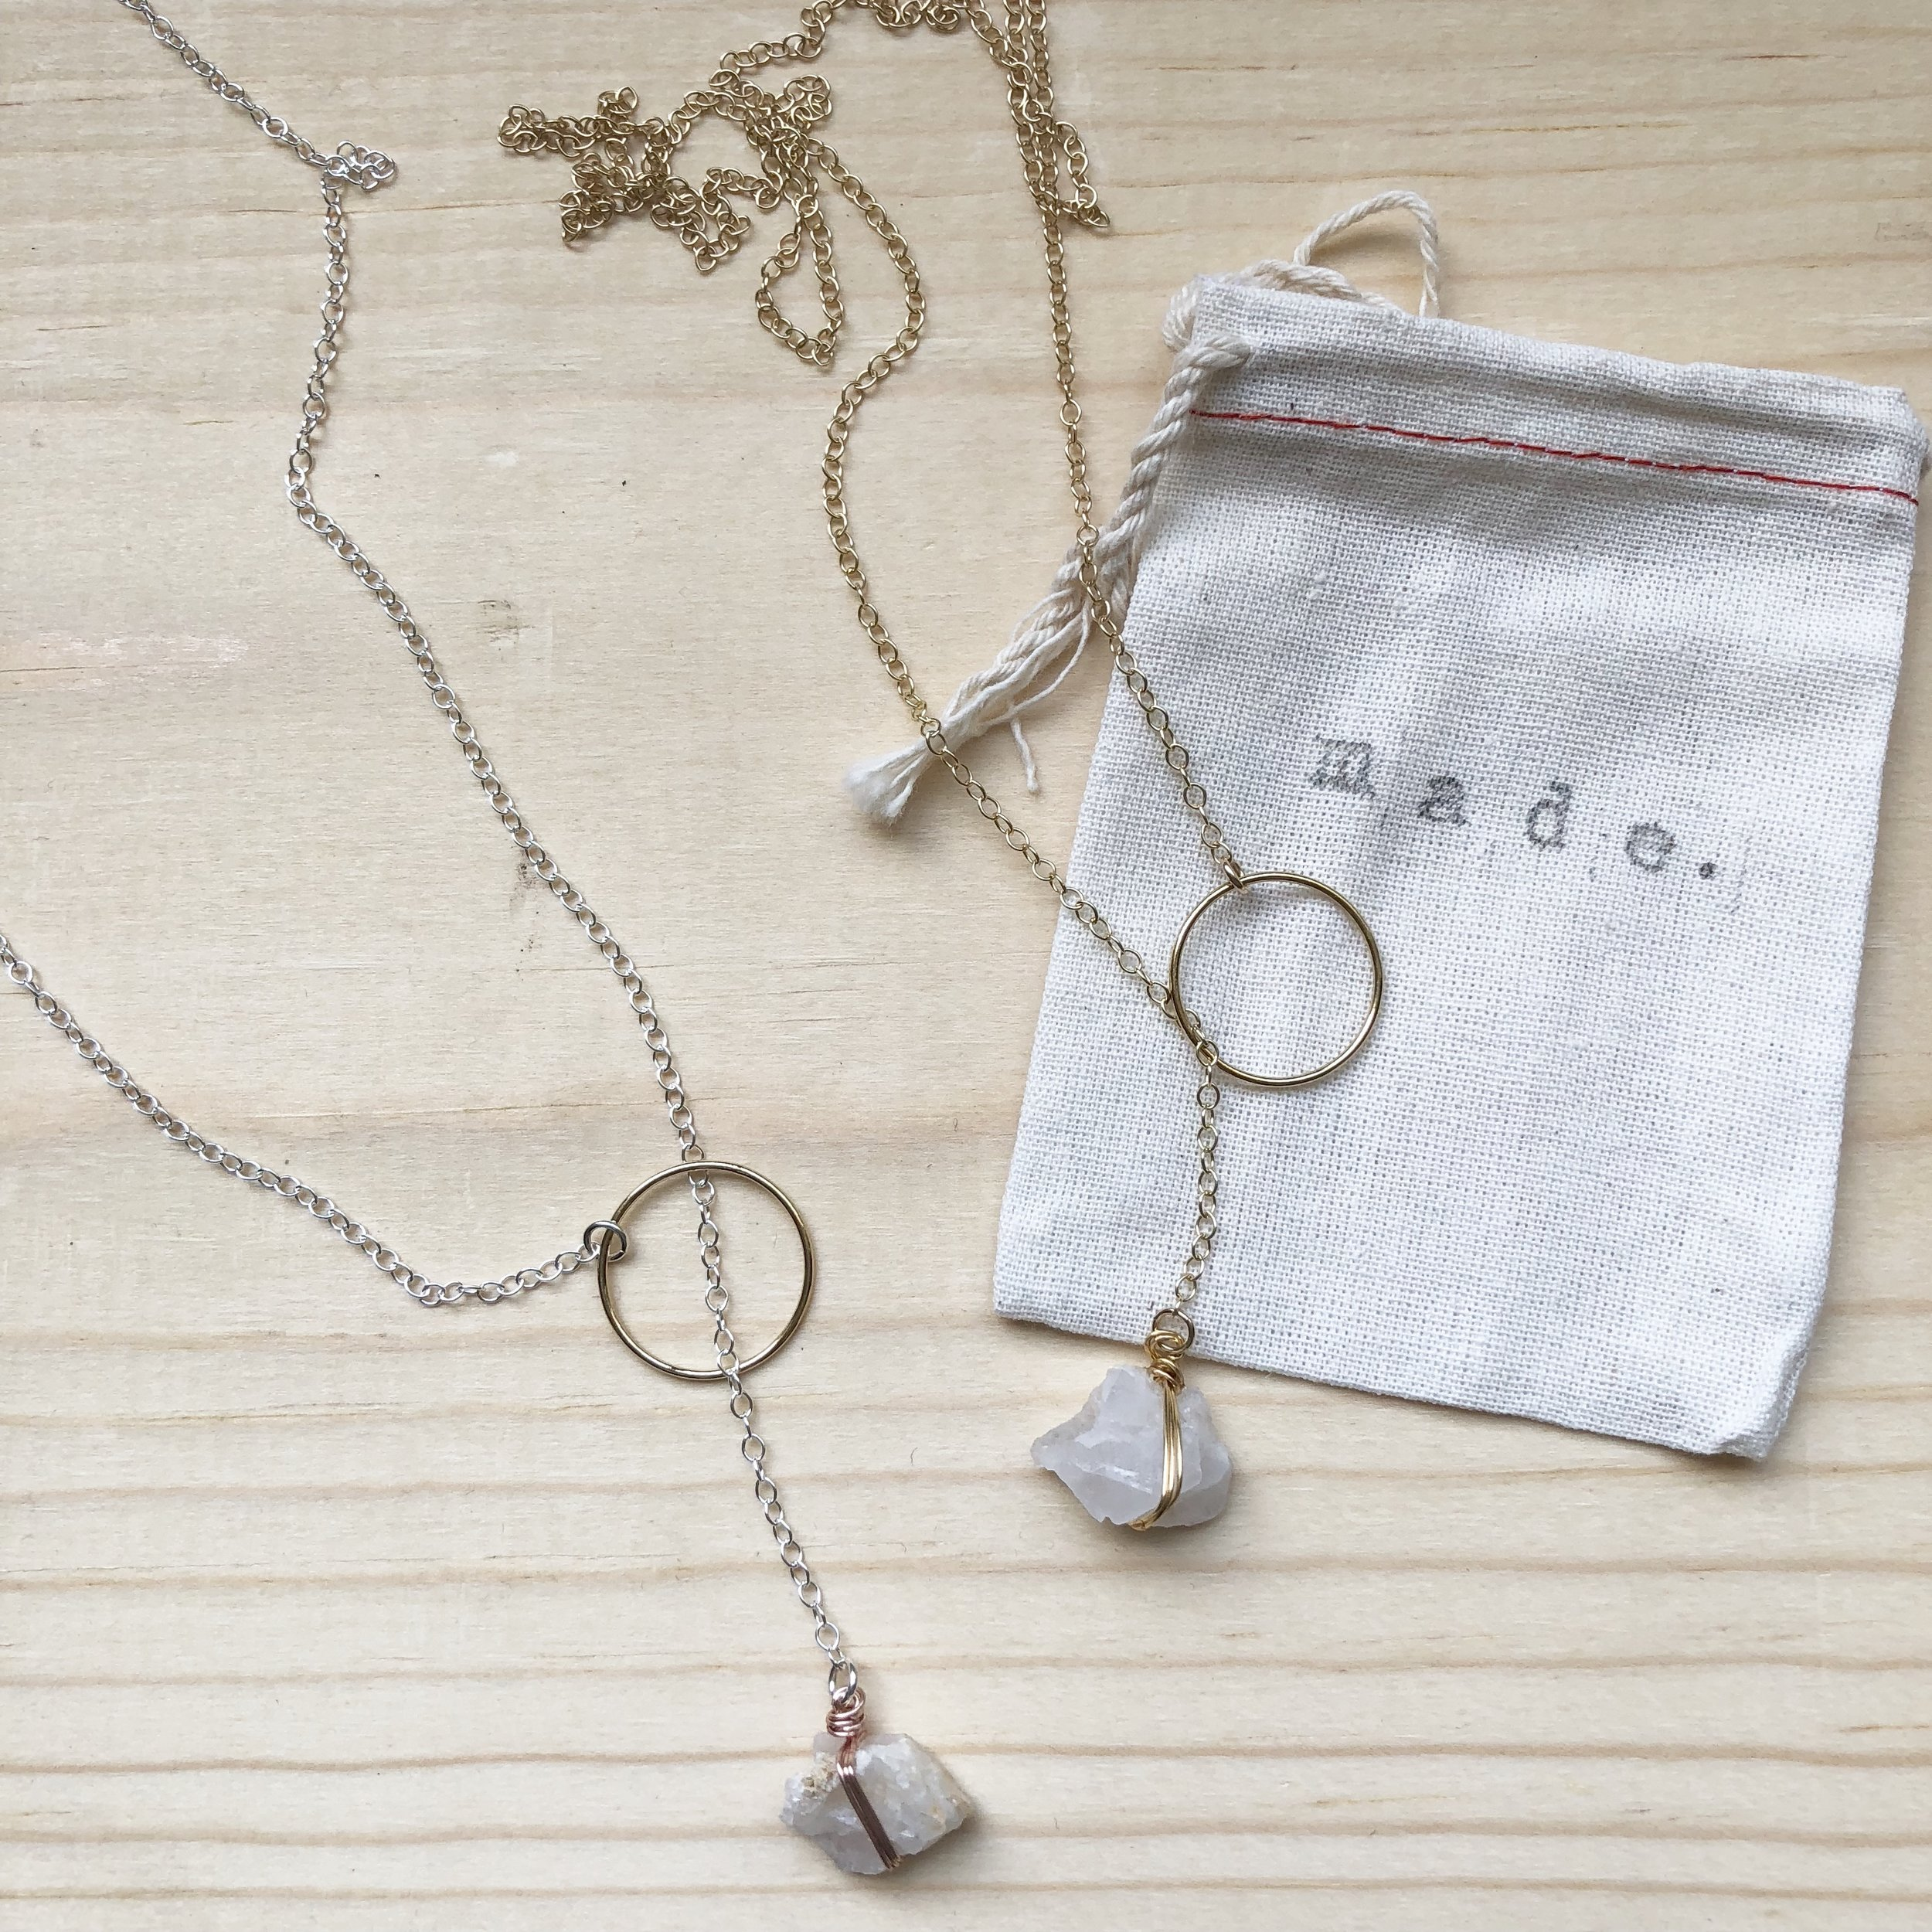 Best Bang for your Buck - Quartz Lariat 3-in-1 Necklace